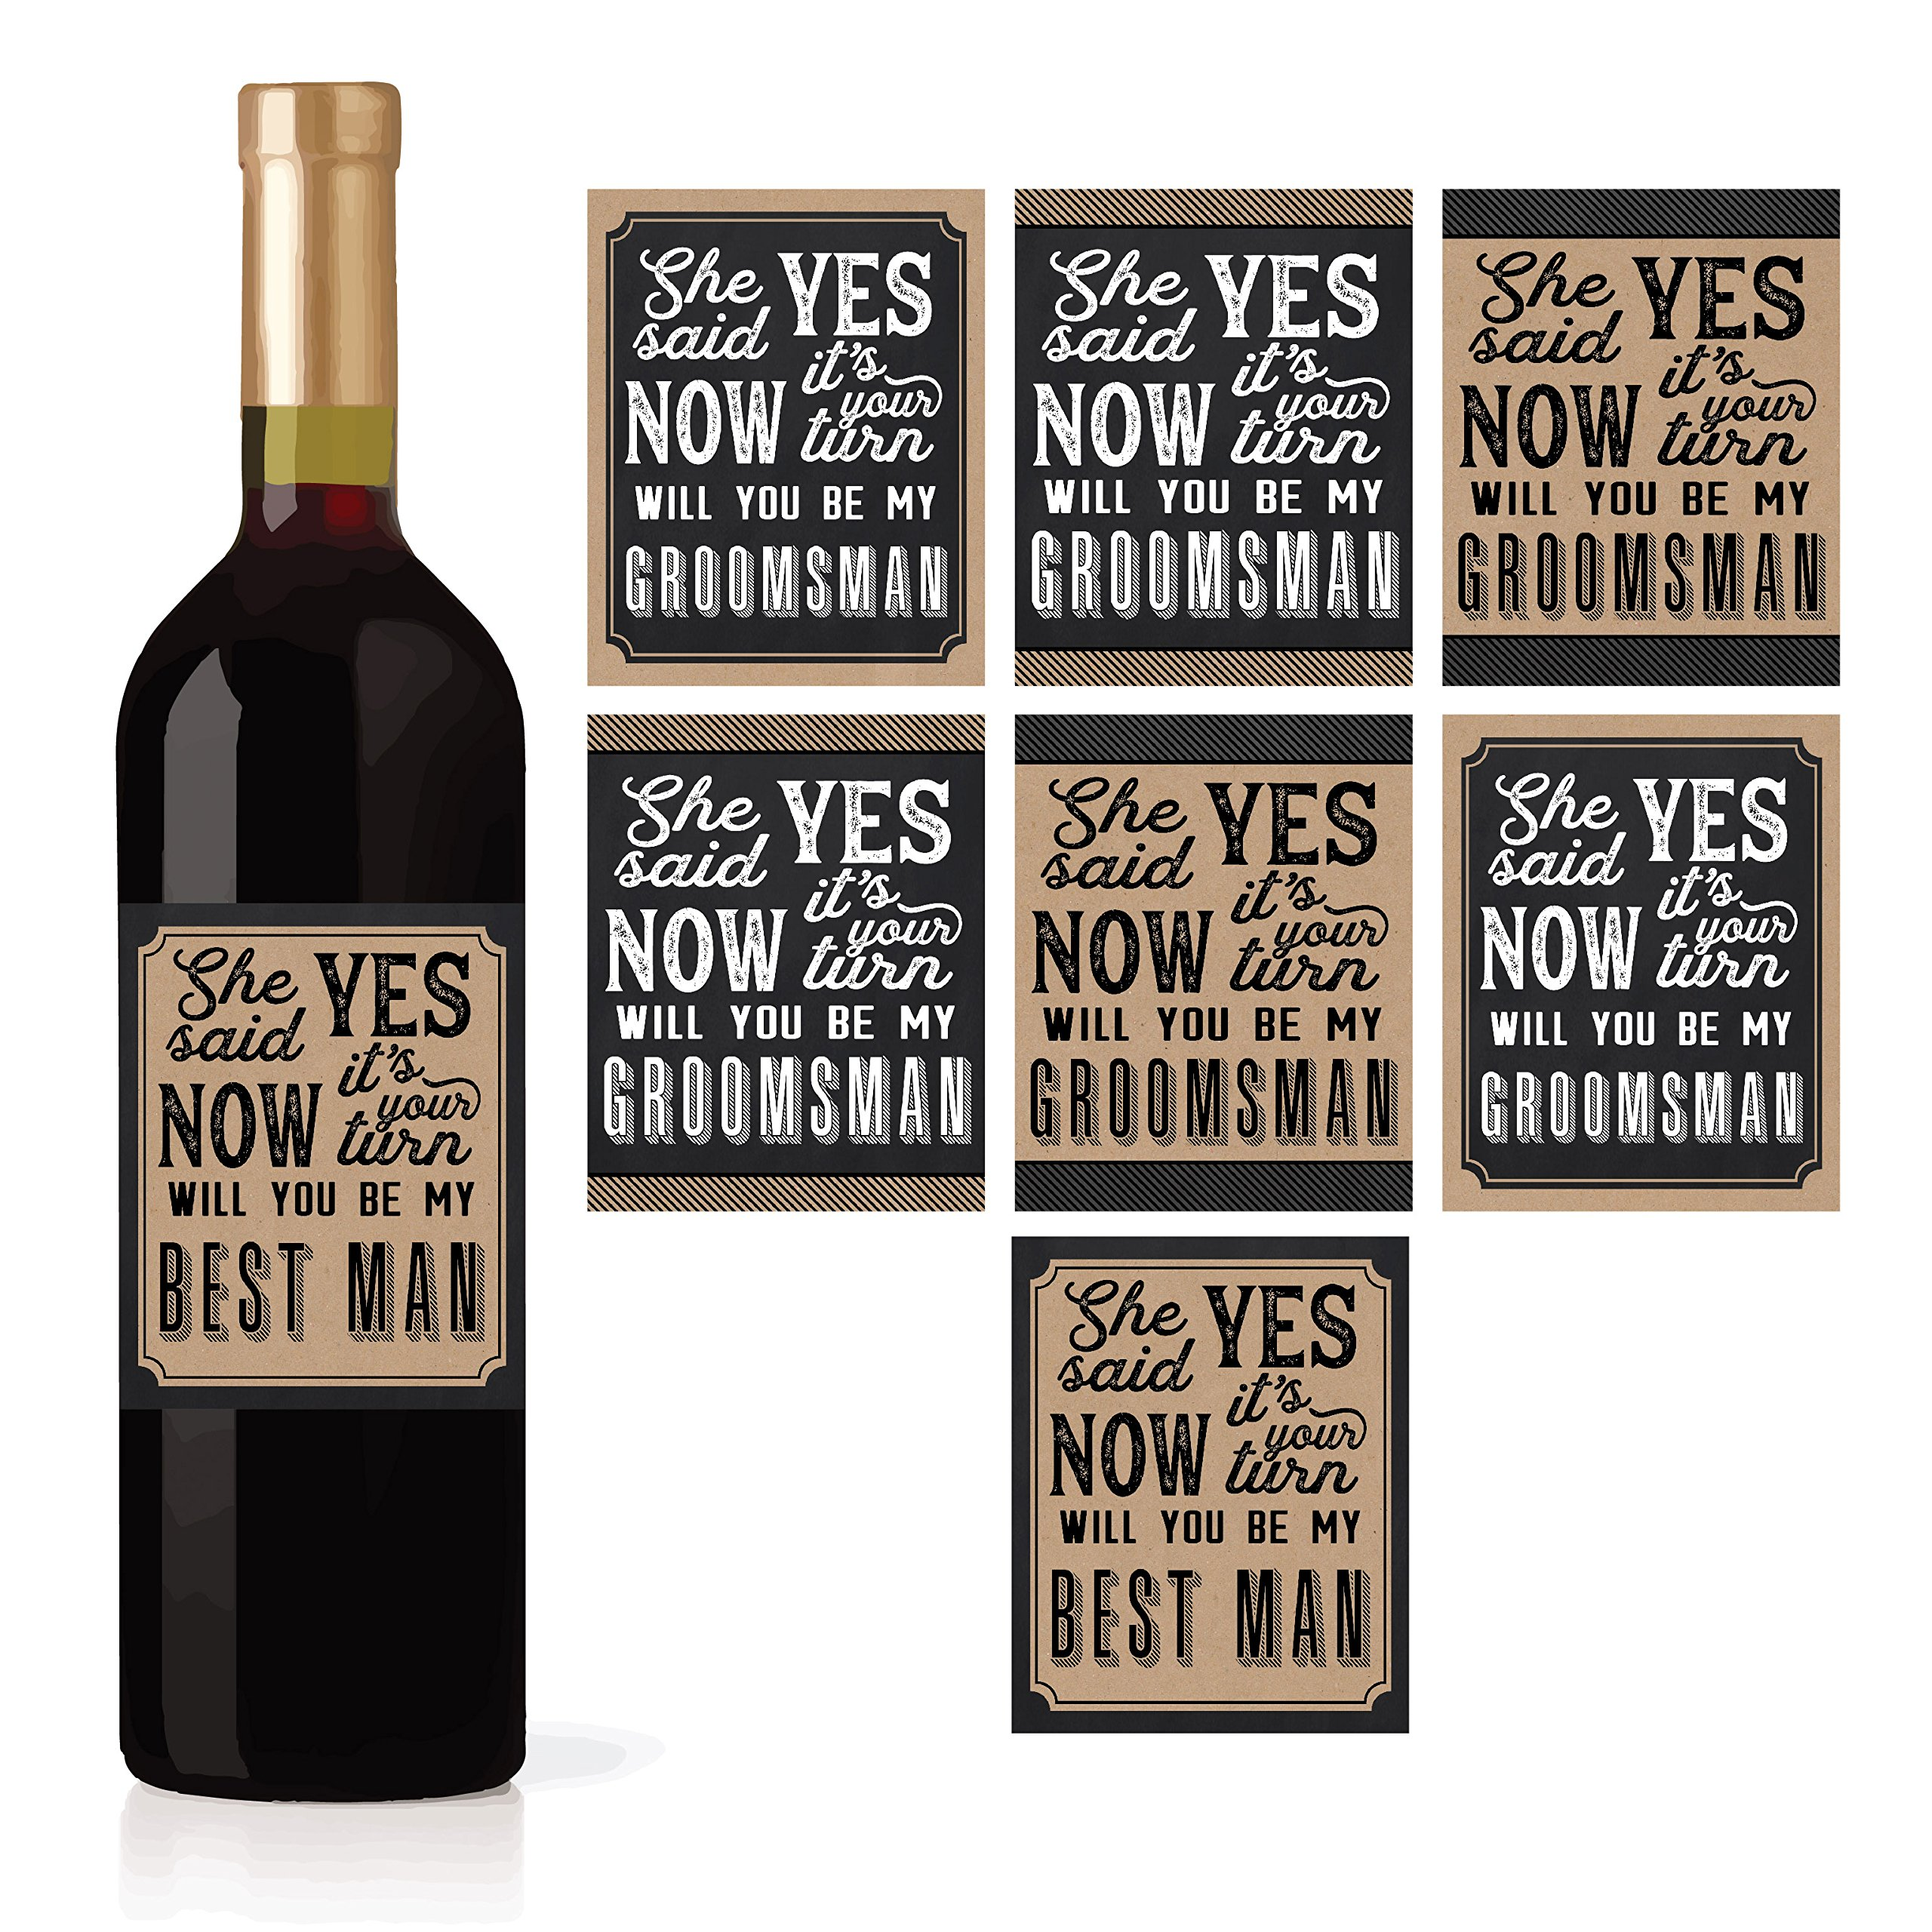 6 Will You Be My Groomsman + 1 BONUS Best Man Proposal Wine, Beer, Whiskey, Liquor Bottle Labels or Stickers Set, Wedding Engagement Supplies For Groomsmen Party Favors Best Way To Ask Your Grooms Men